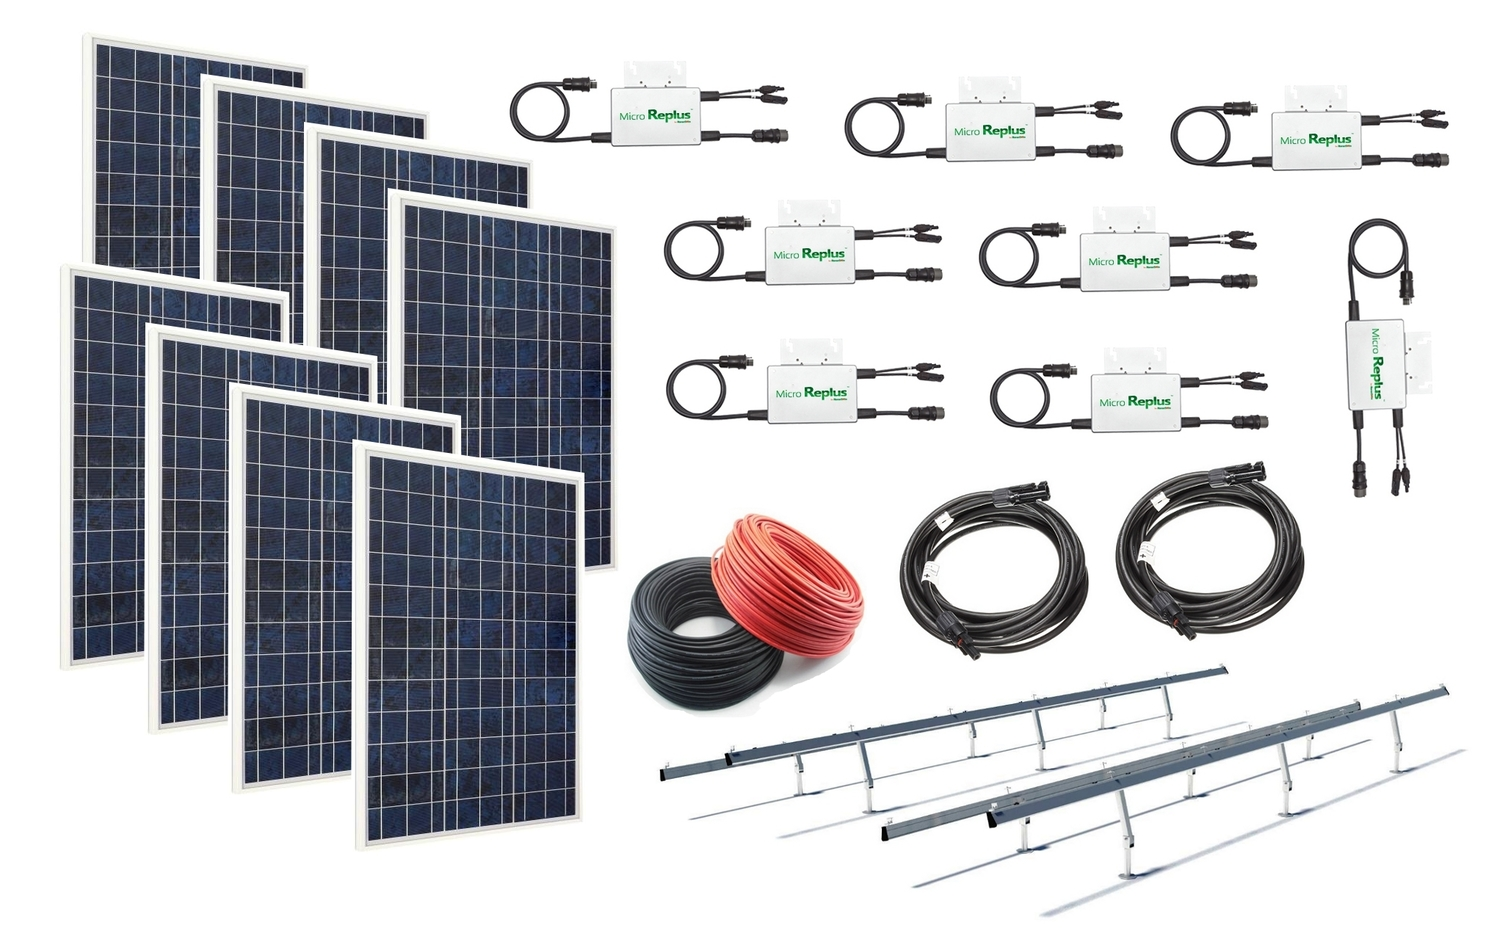 Windsoleil 208kw Grid Tie Solar Power System With Micro Inverters Wiring Panels To Inverter